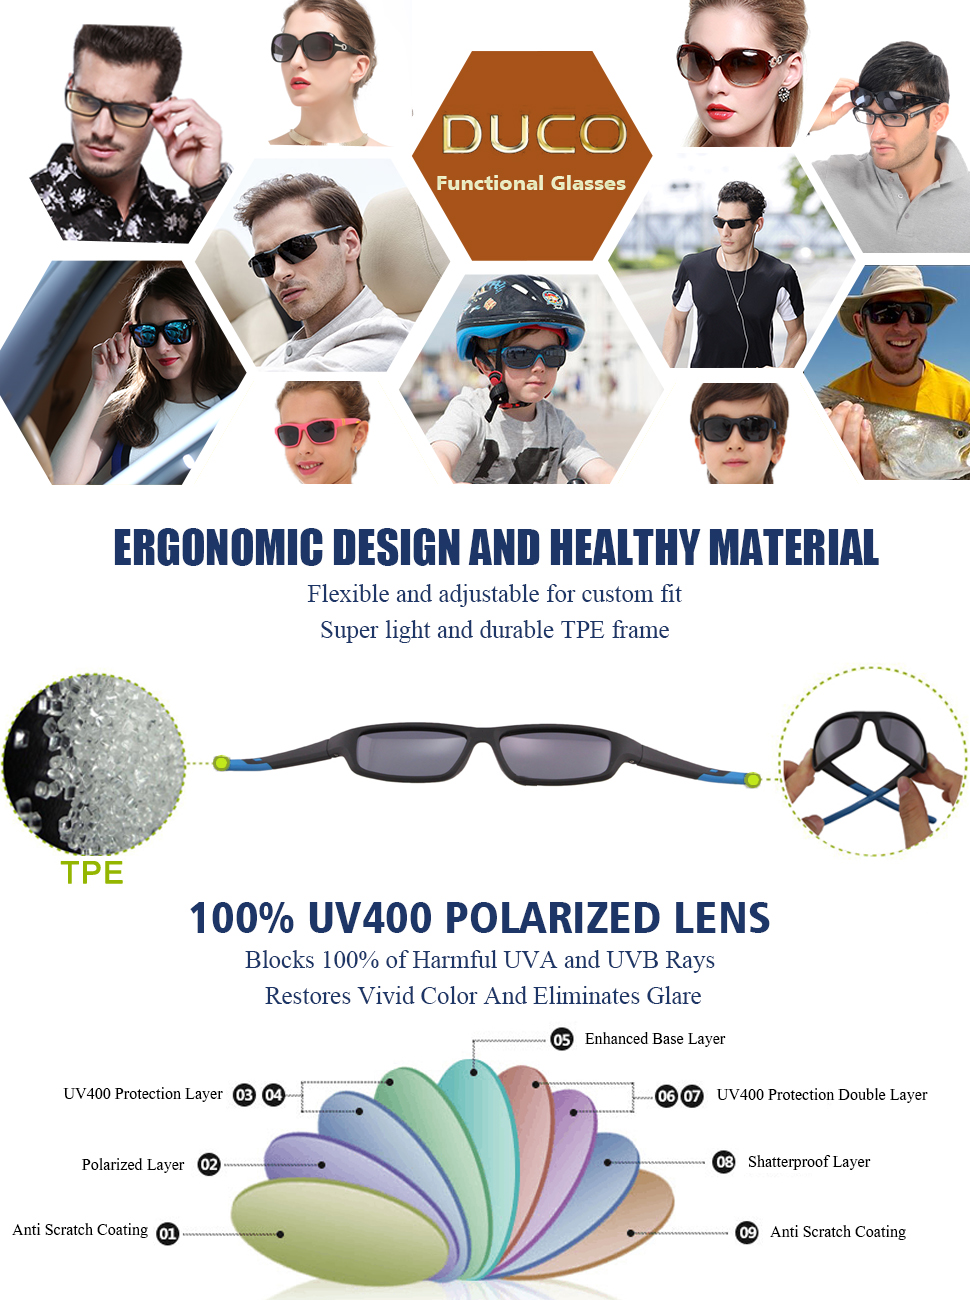 19c873dbbcf Duco Children s Polarized Sunglasses Keep Your Child s Eyes Protected From  The Sunshine And UV Rays.